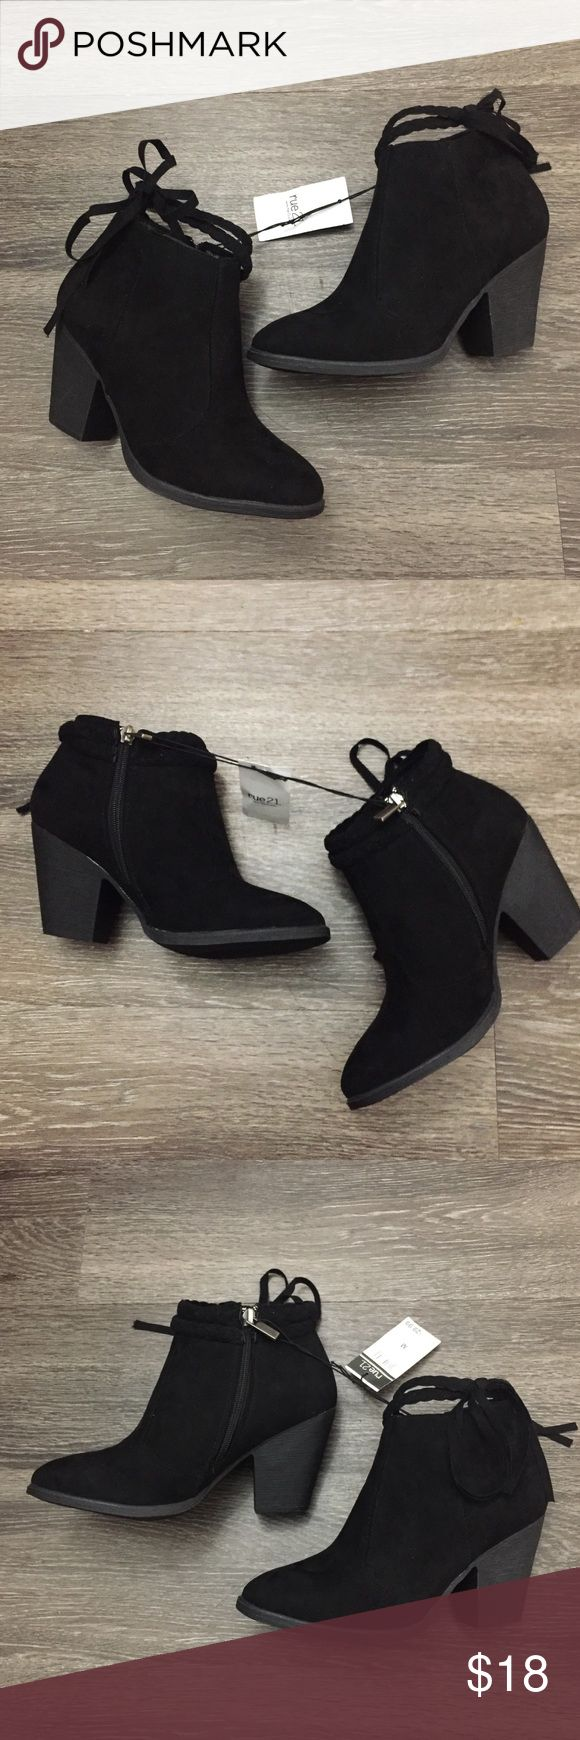 Rue 21 ankle black booties #sizemedium #size7 #rue21 #black #anklebooties with wrap around ankle detail . New with tags never worn only tried on . #booties #boots great for casual or dressing up . Pair with #jeans #leggings #miniskirts #bodycon #pencilskirt or a #skaterdress or #bodycon #dress and a cute #jacket #fashion fall #winter Rue 21 Shoes Ankle Boots & Booties